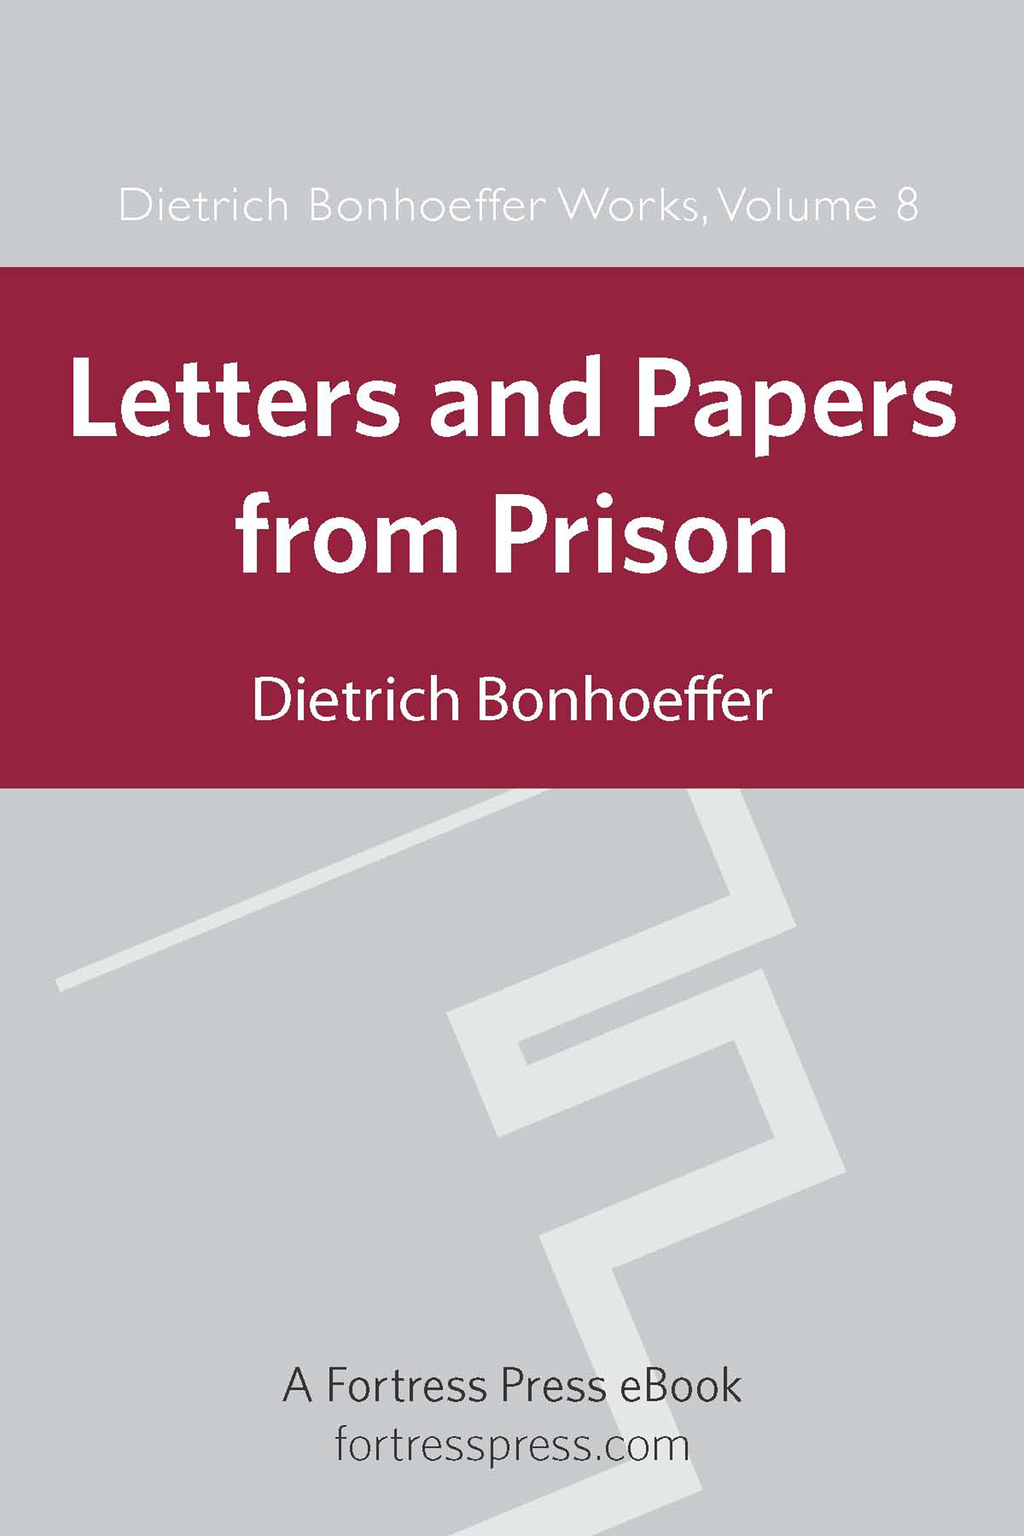 Letters and Papers from Prison DBW Vol 8